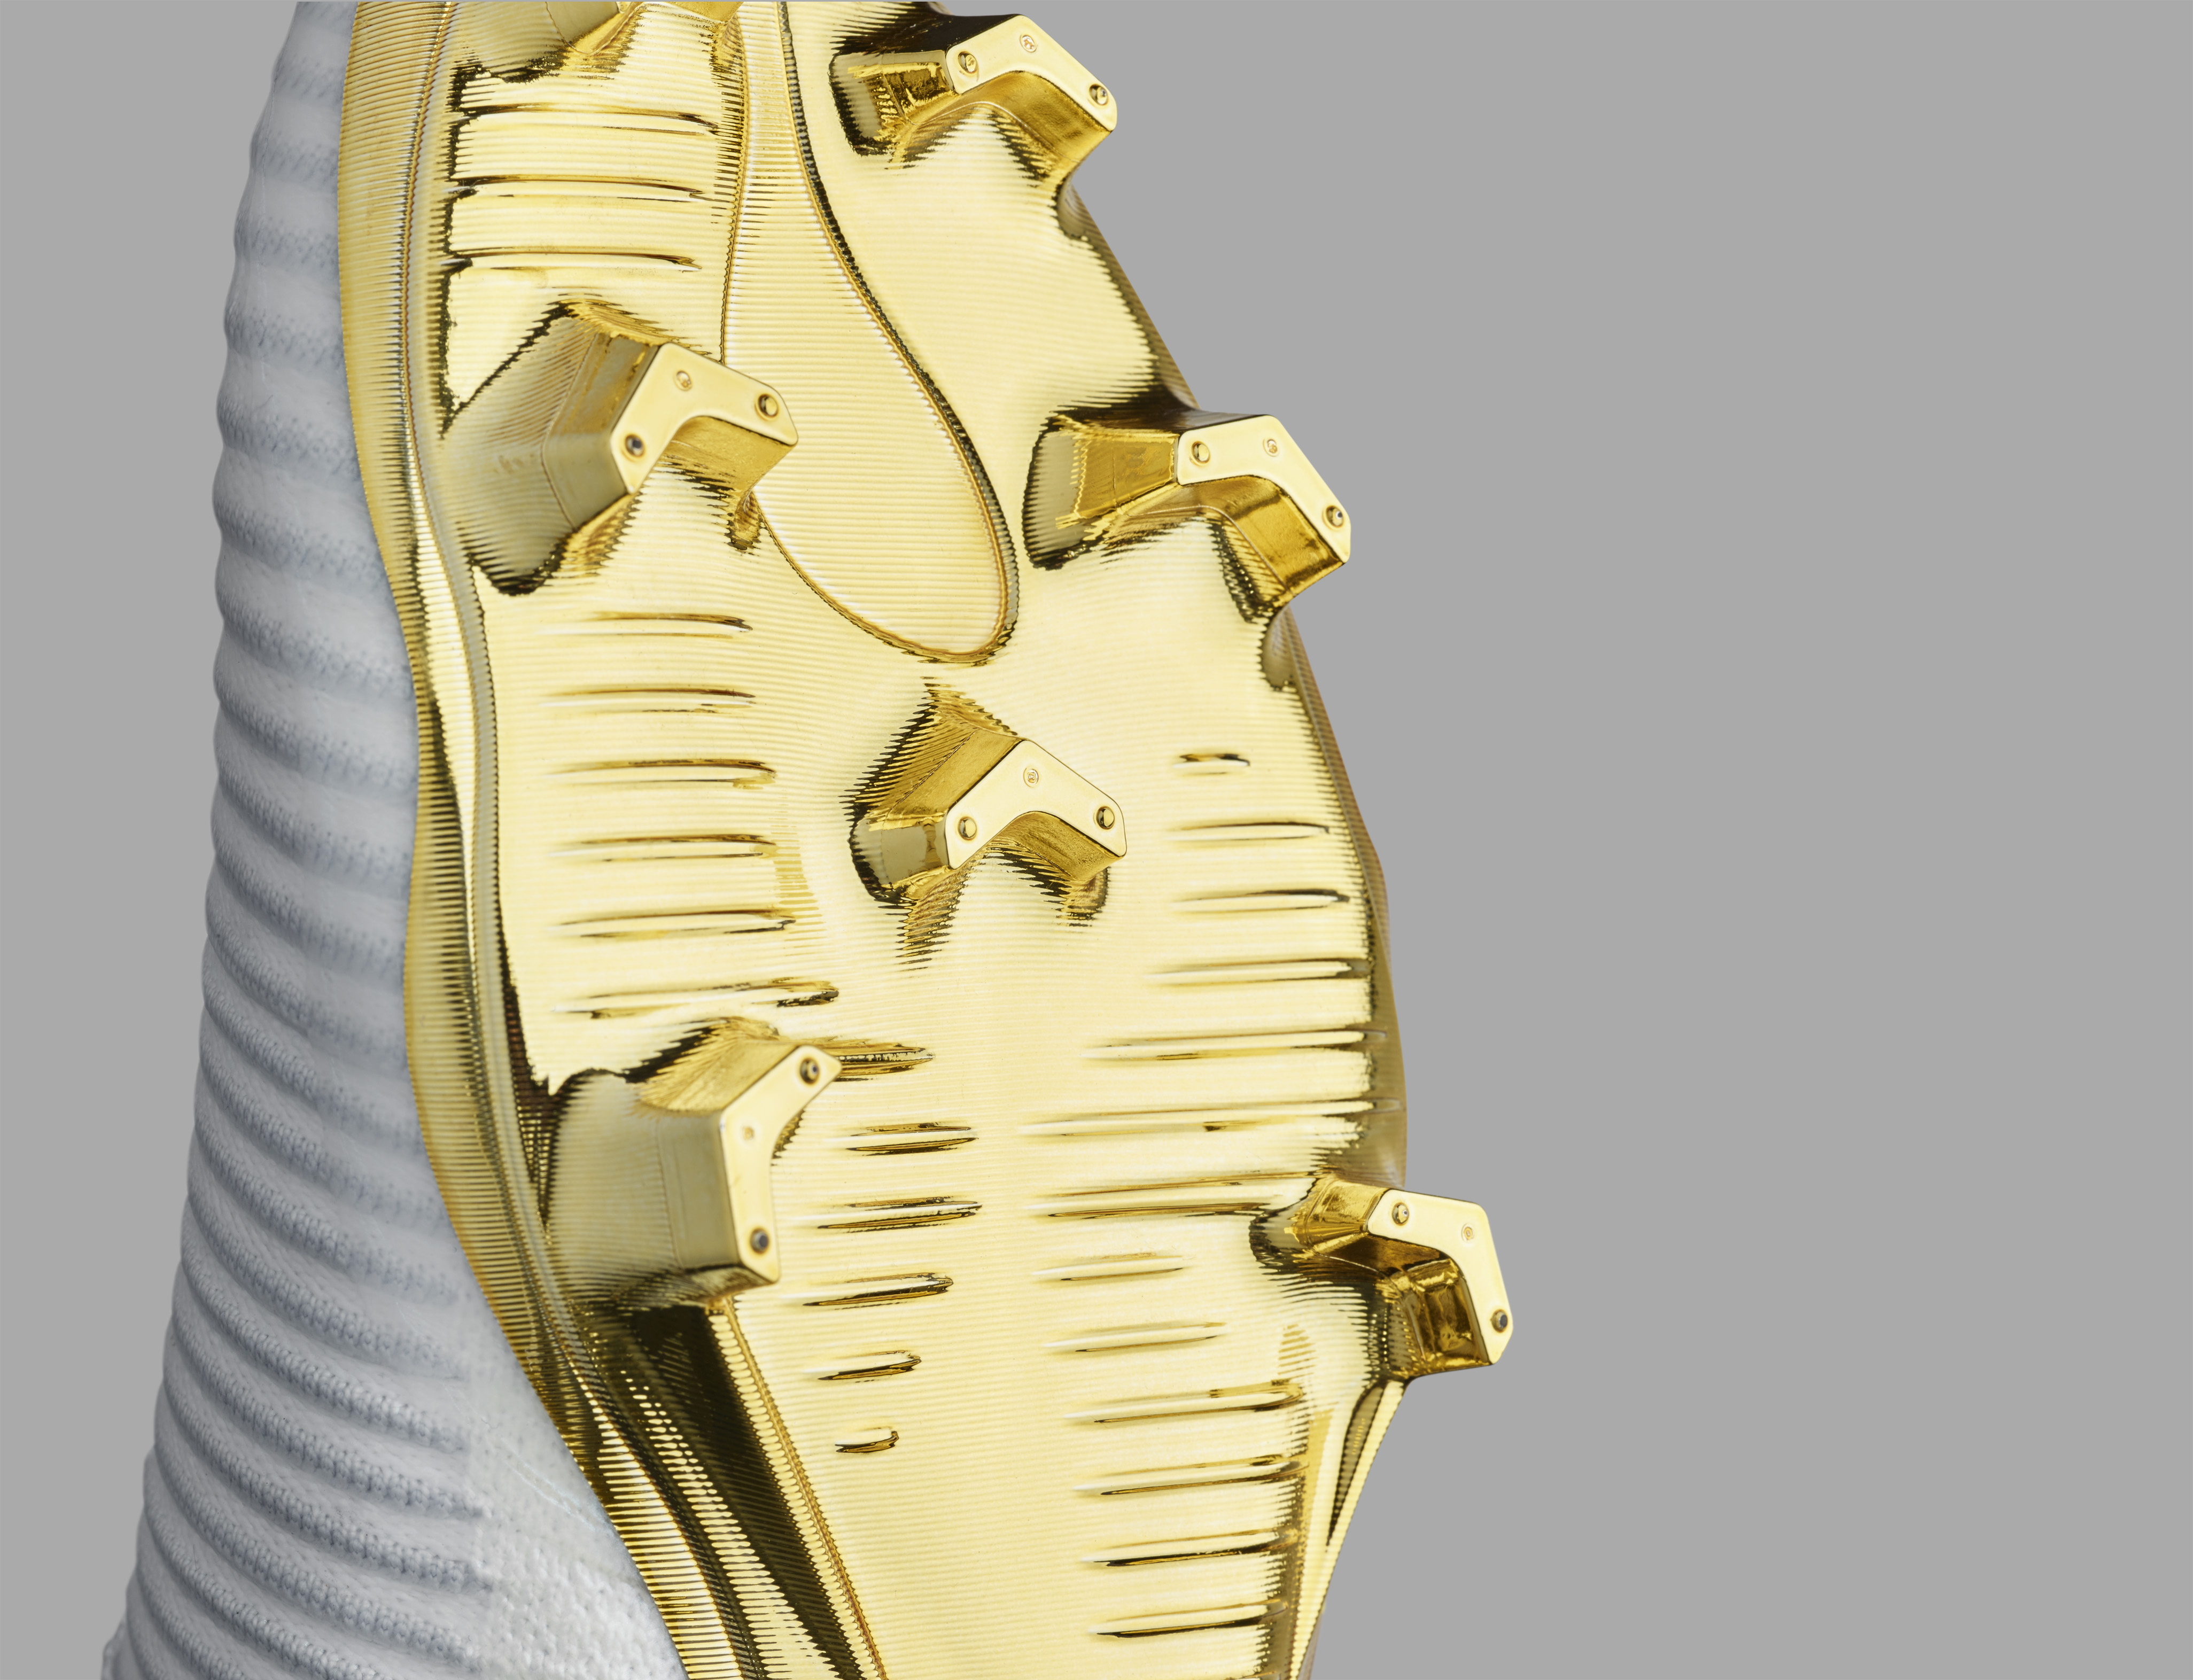 new arrival 81477 e3632 Nike Cr7 Price In India Cr7 Cleats Gold Gold White